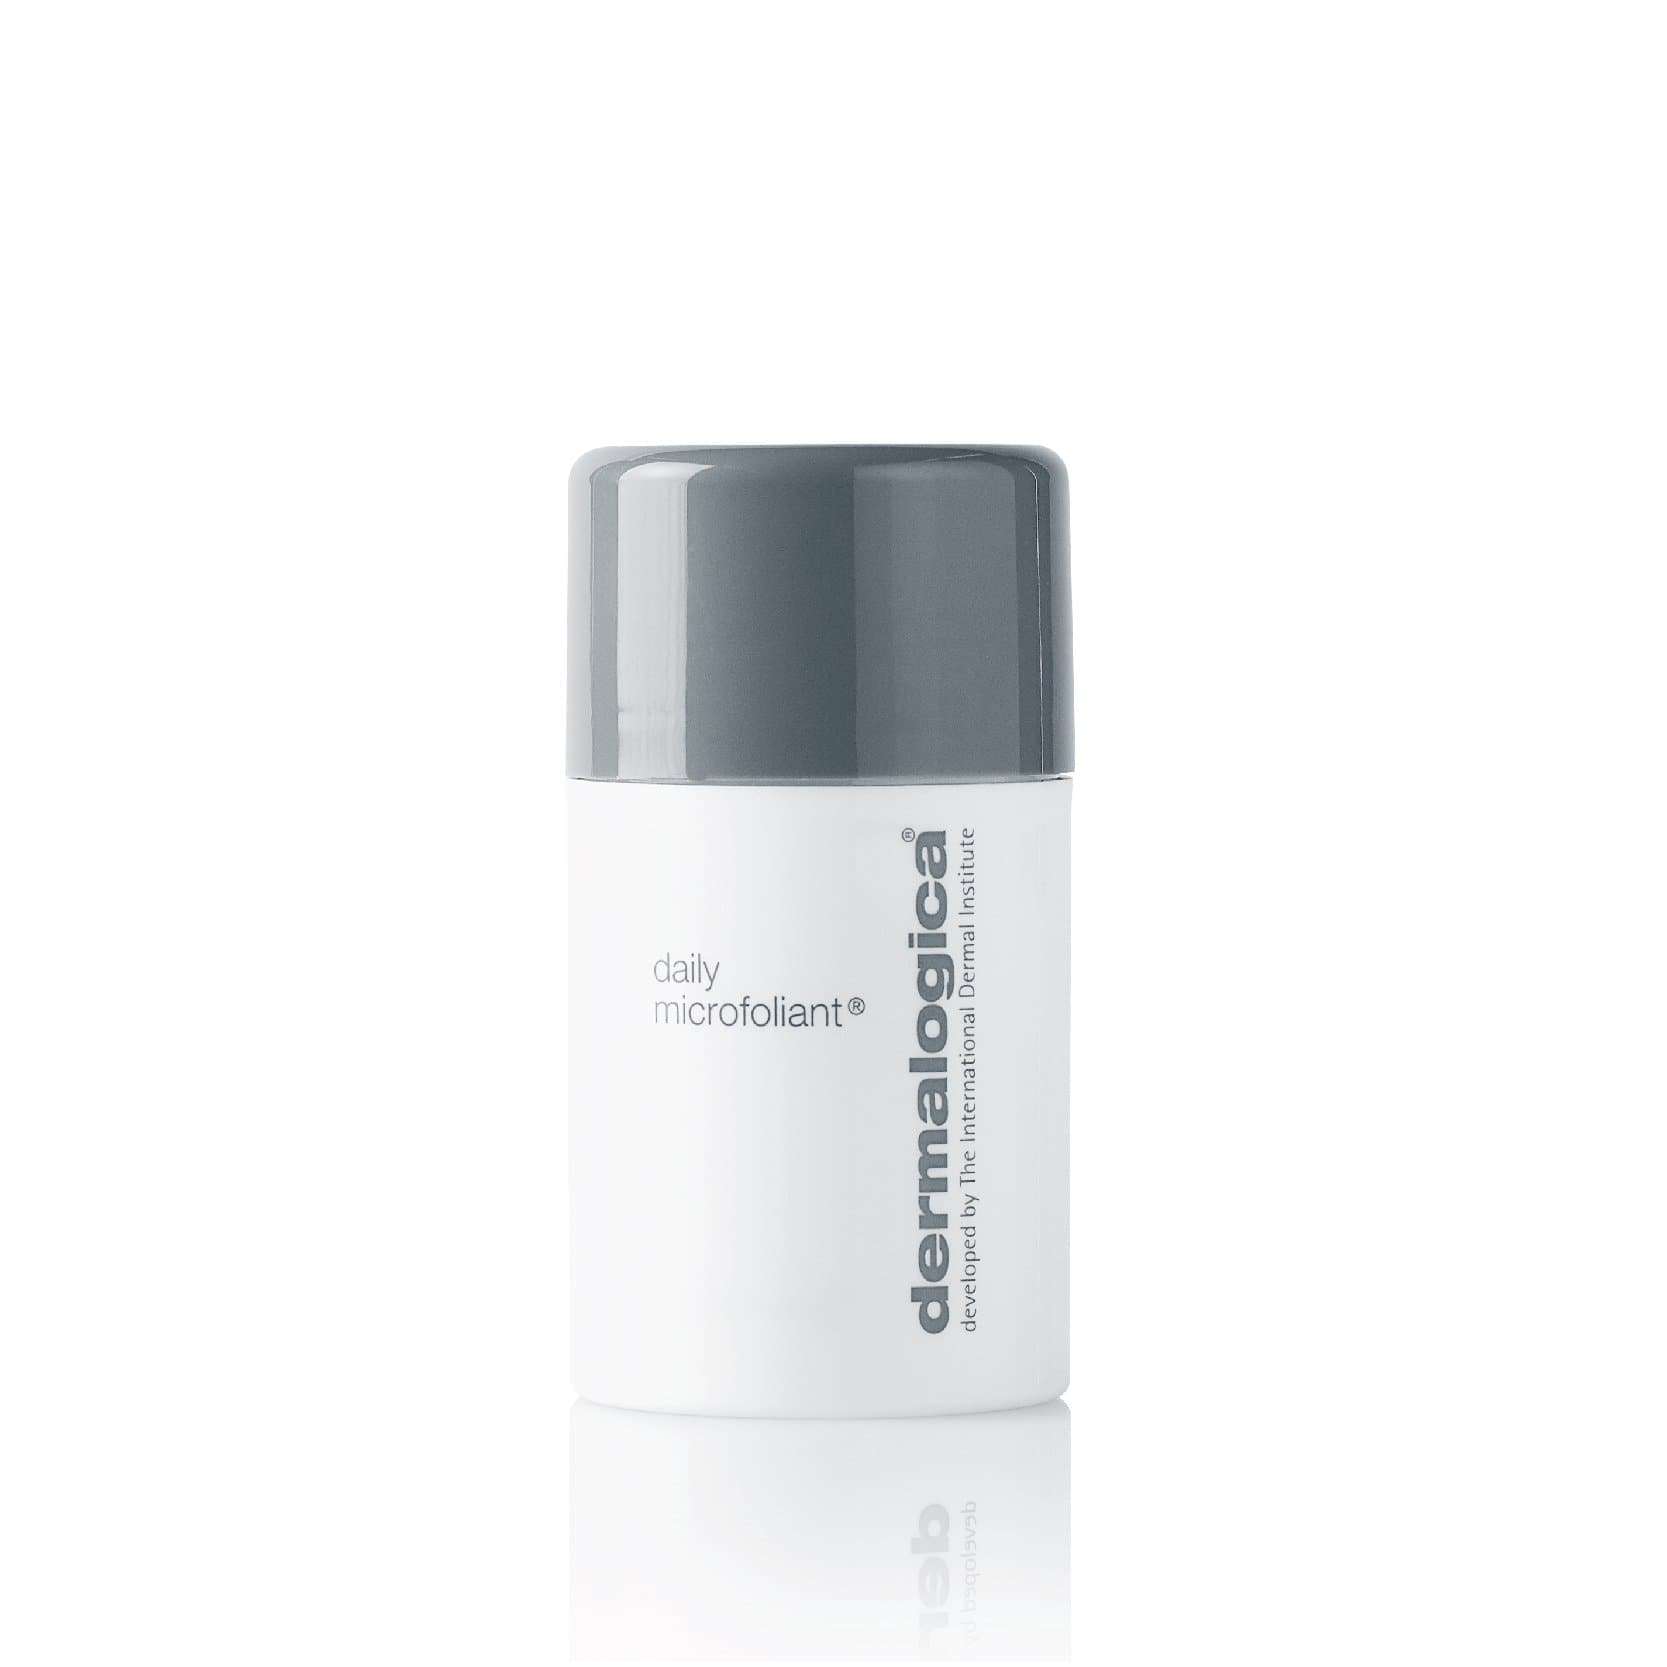 Daily Microfoliant Mini online for glowing skin, Dermalogica India